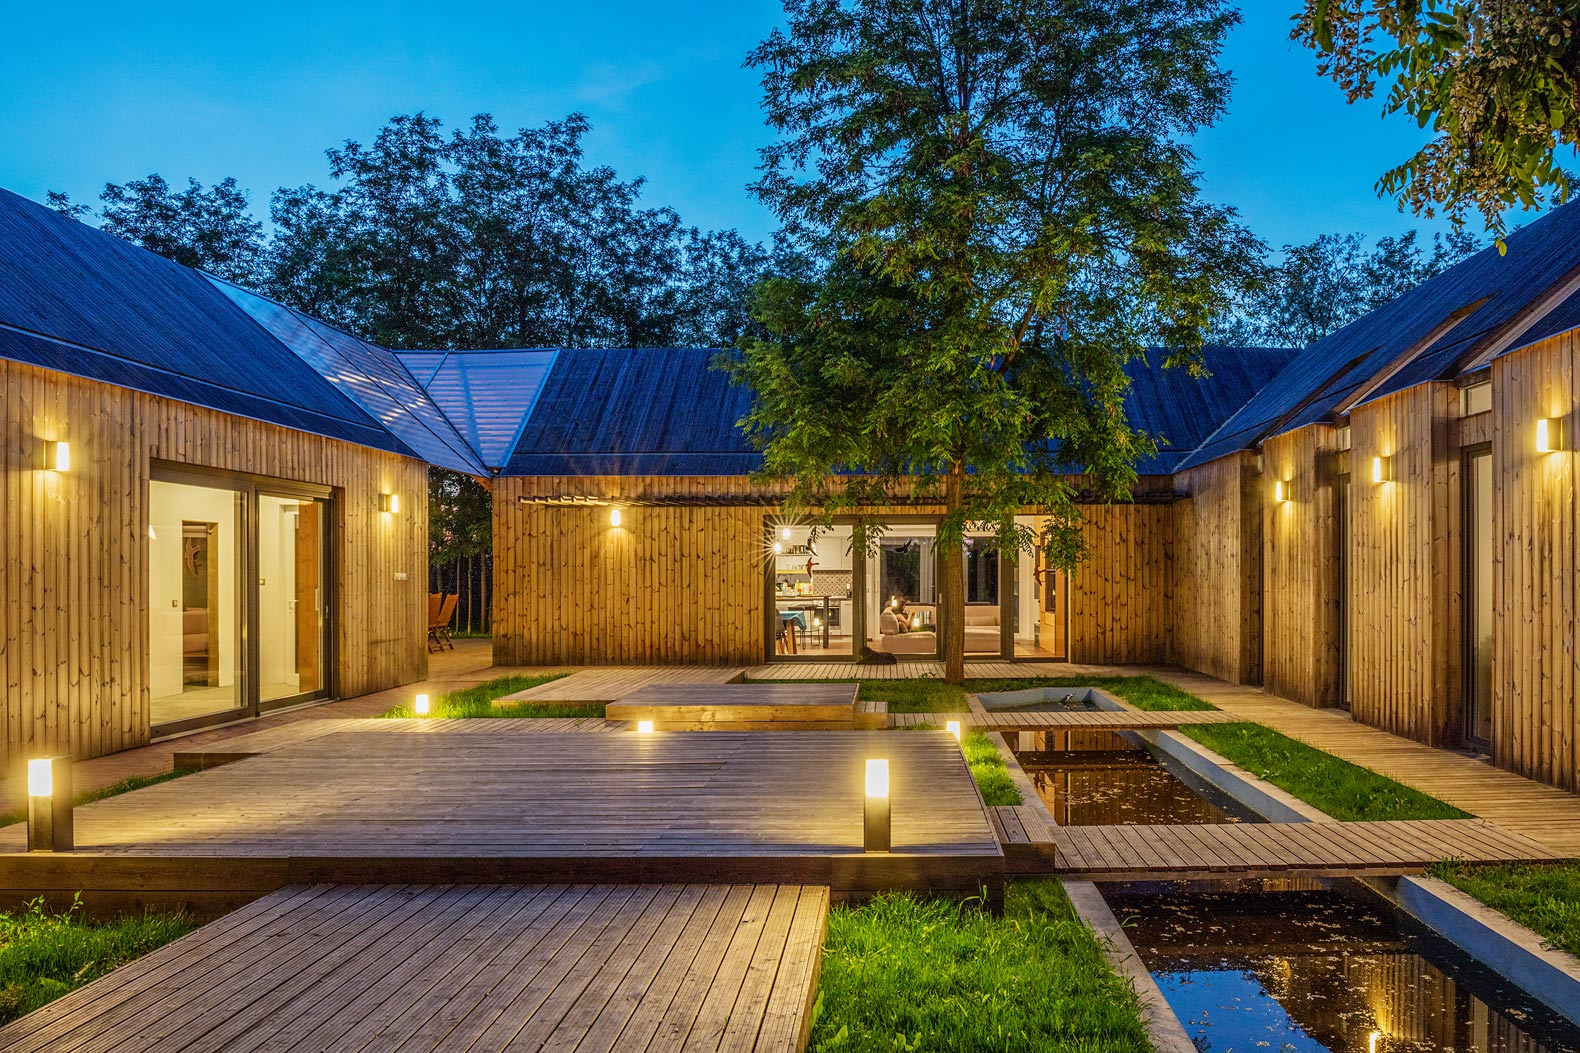 Award-winning Hungarian home combines old-world charm with modern style